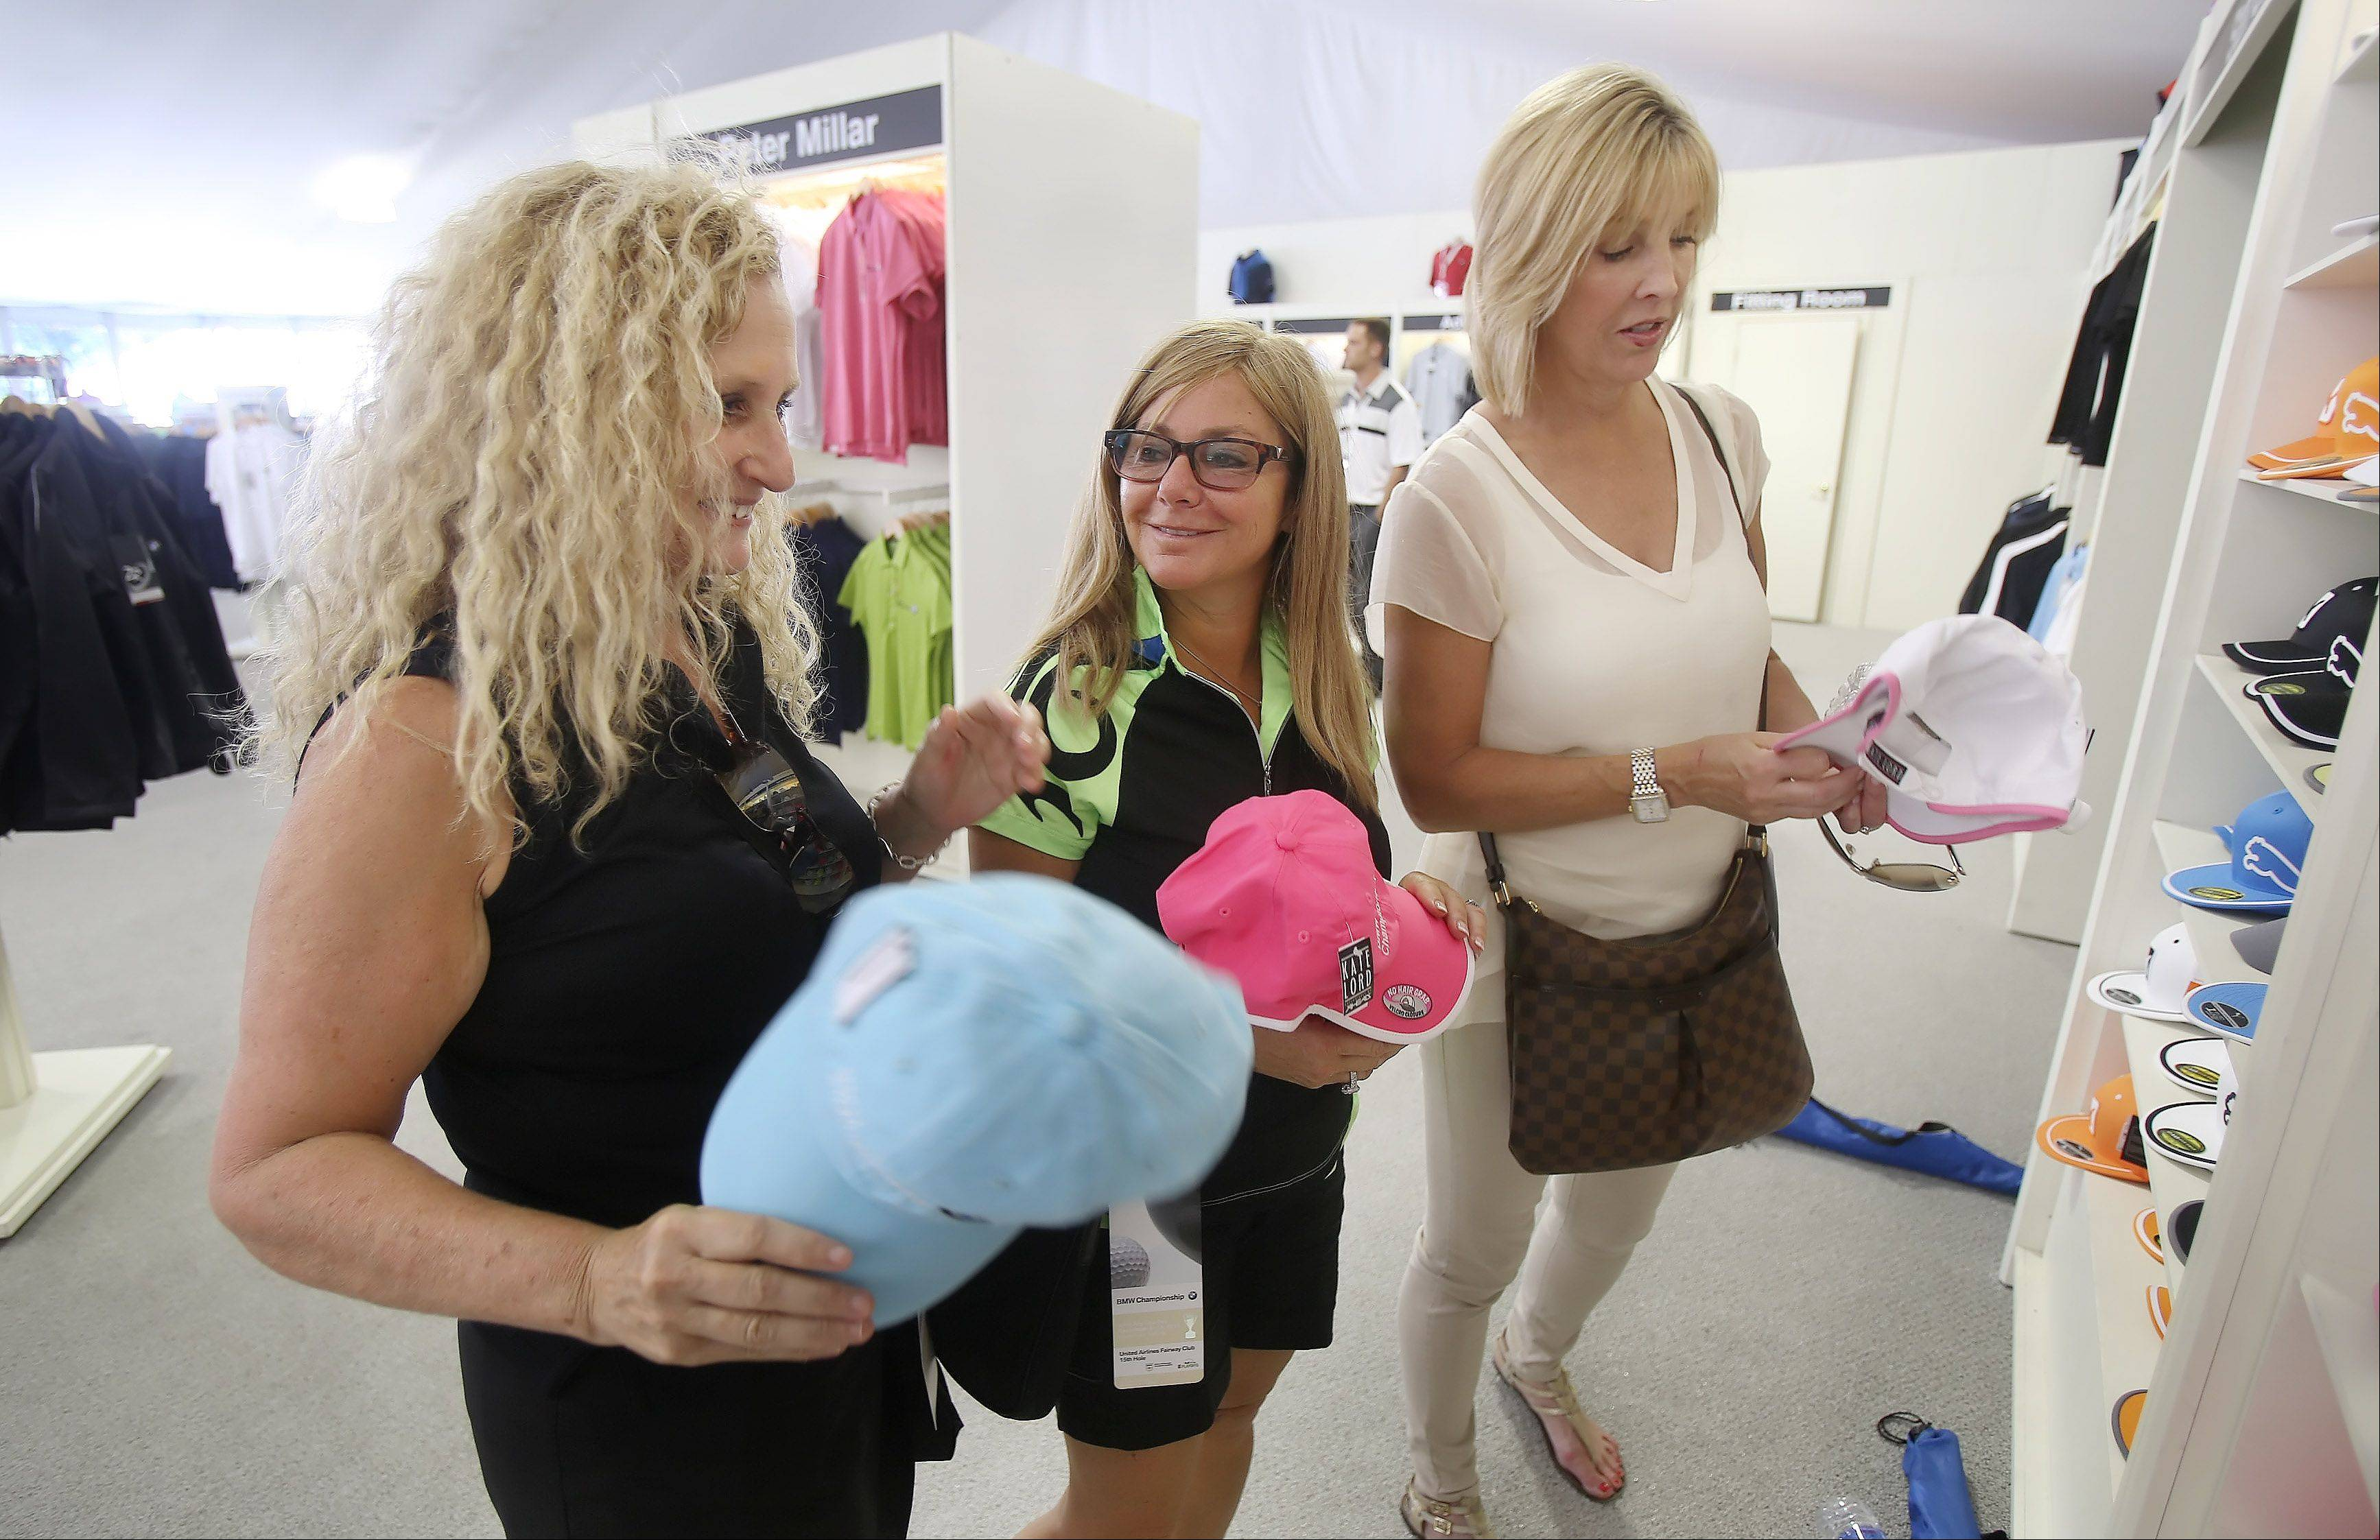 Buffalo Grove residents Sari Wiaz, left, Pam Kahn, and Diana Soskin look at caps in the golf store Monday.